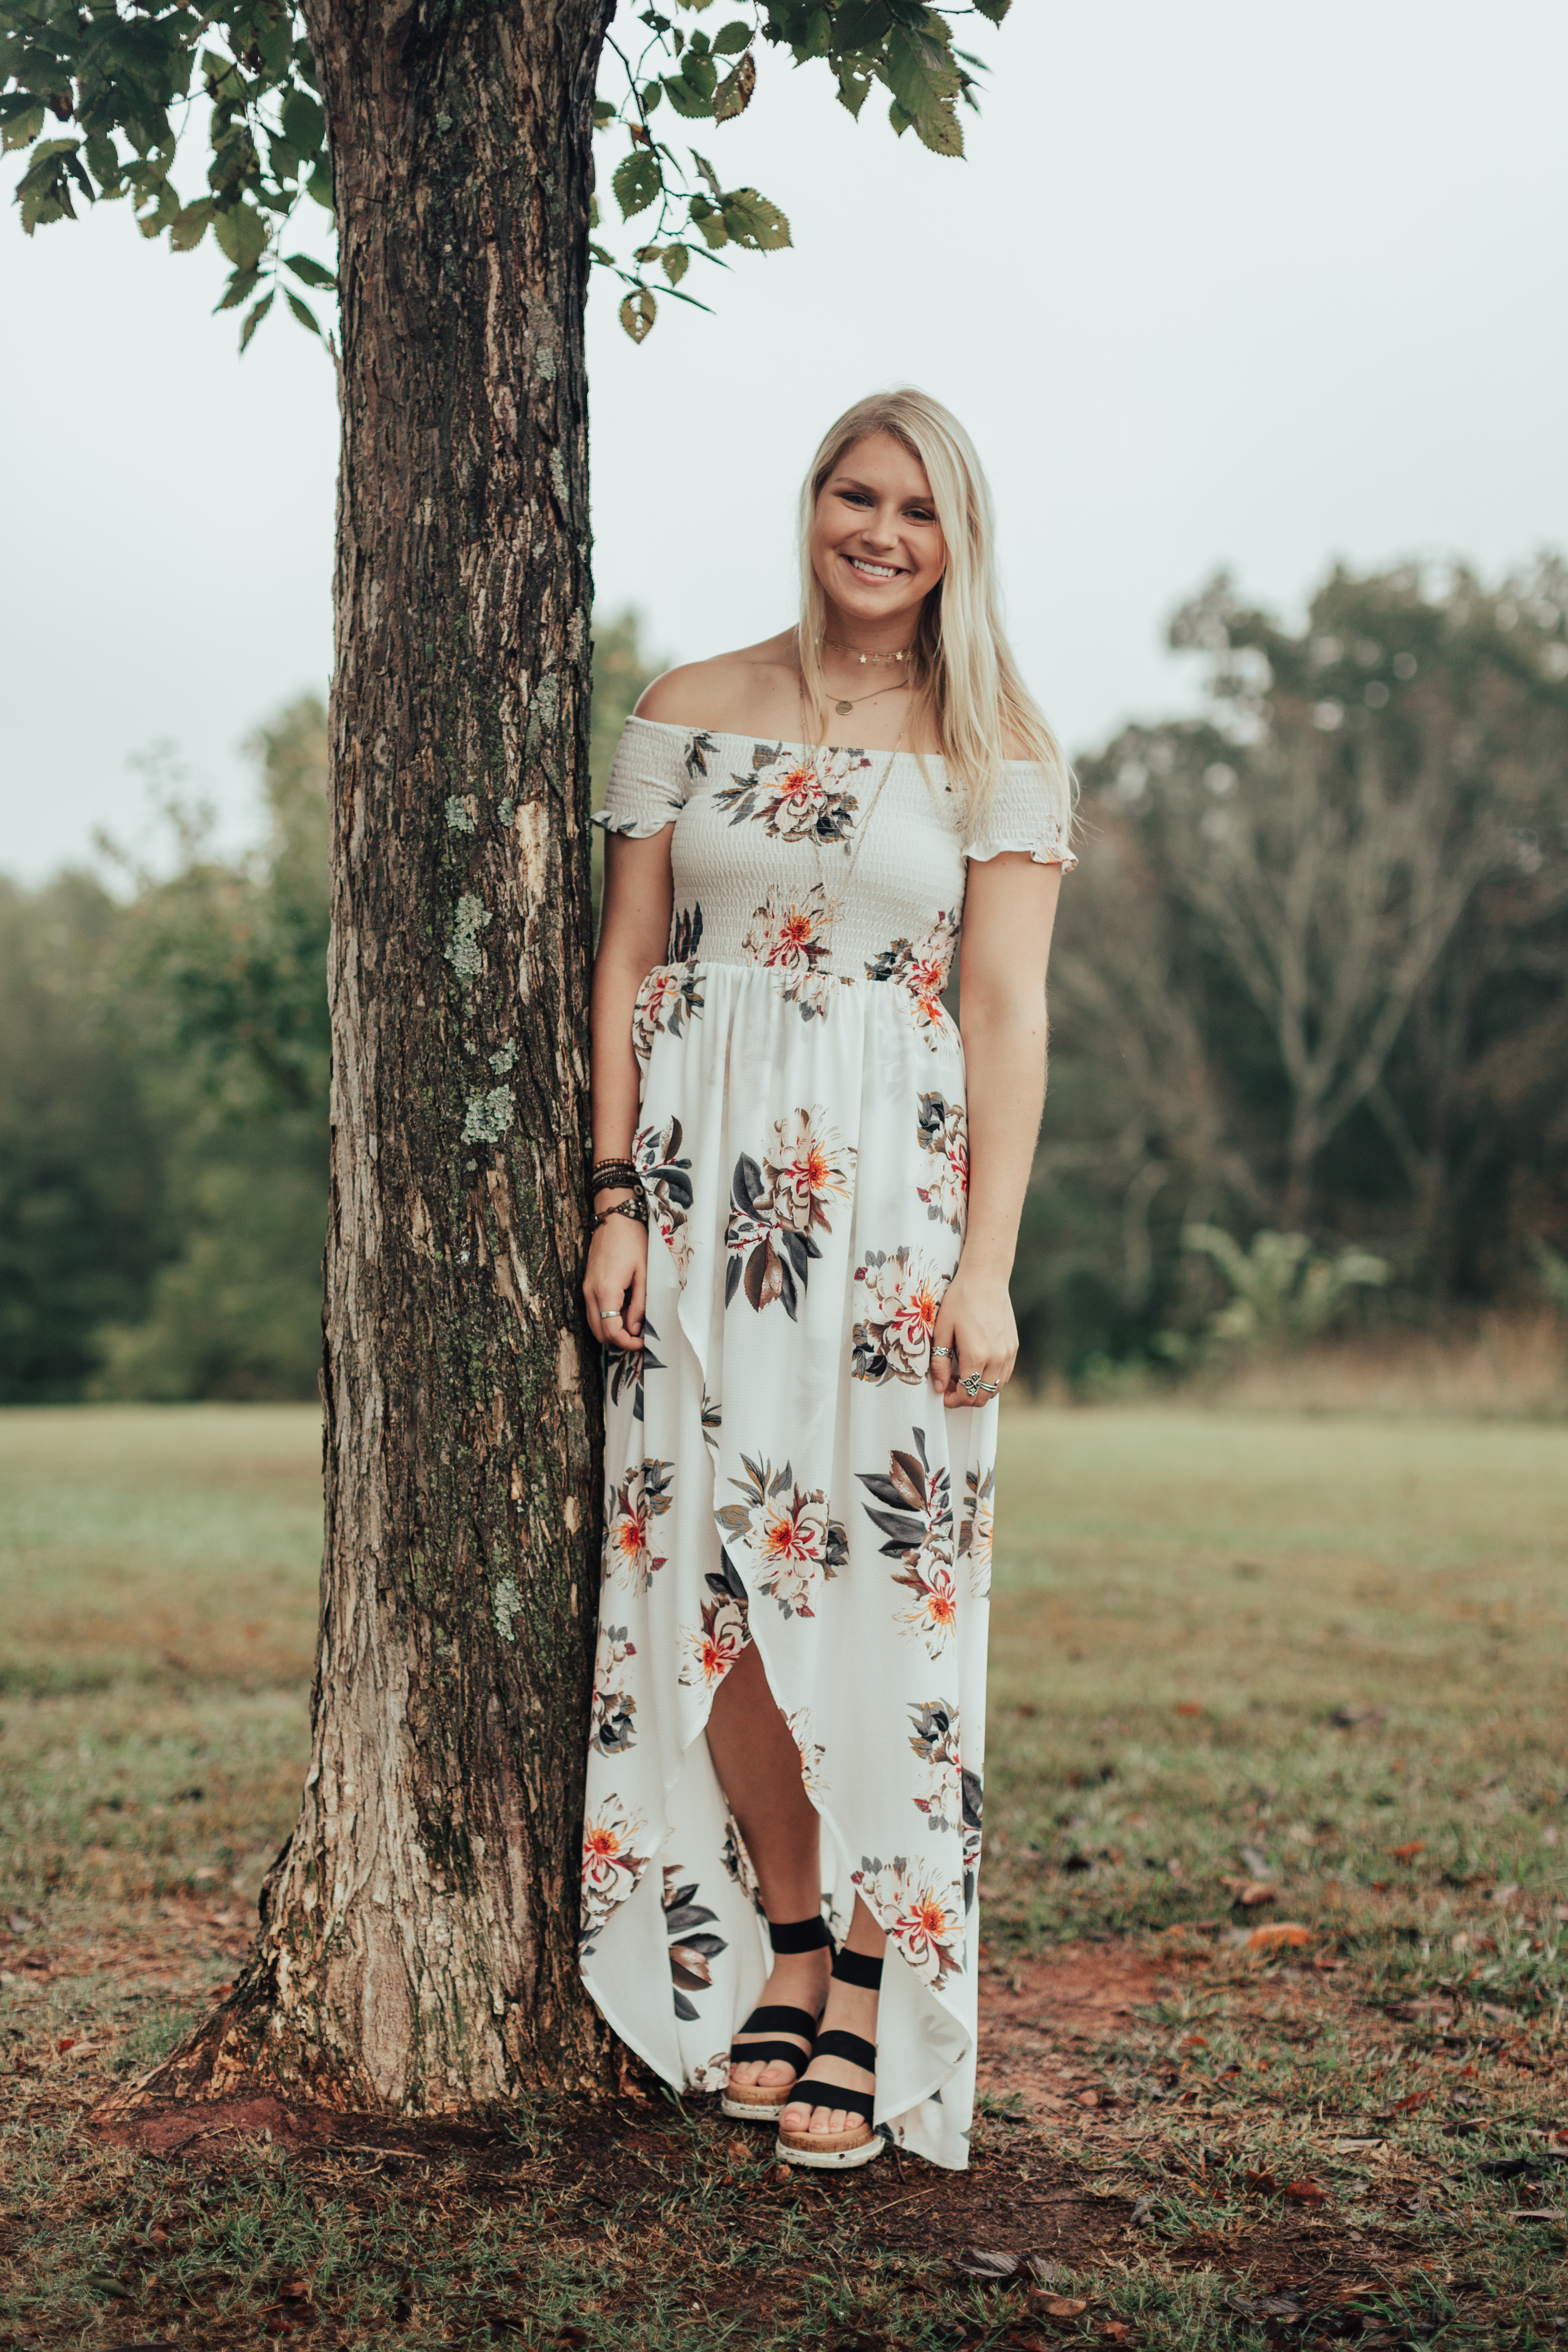 Jordyn S. senior pictures Wesleyan white floral dress idea poses white house outdoor field golden hour bride dress wedding dress gold necklaces Olie West